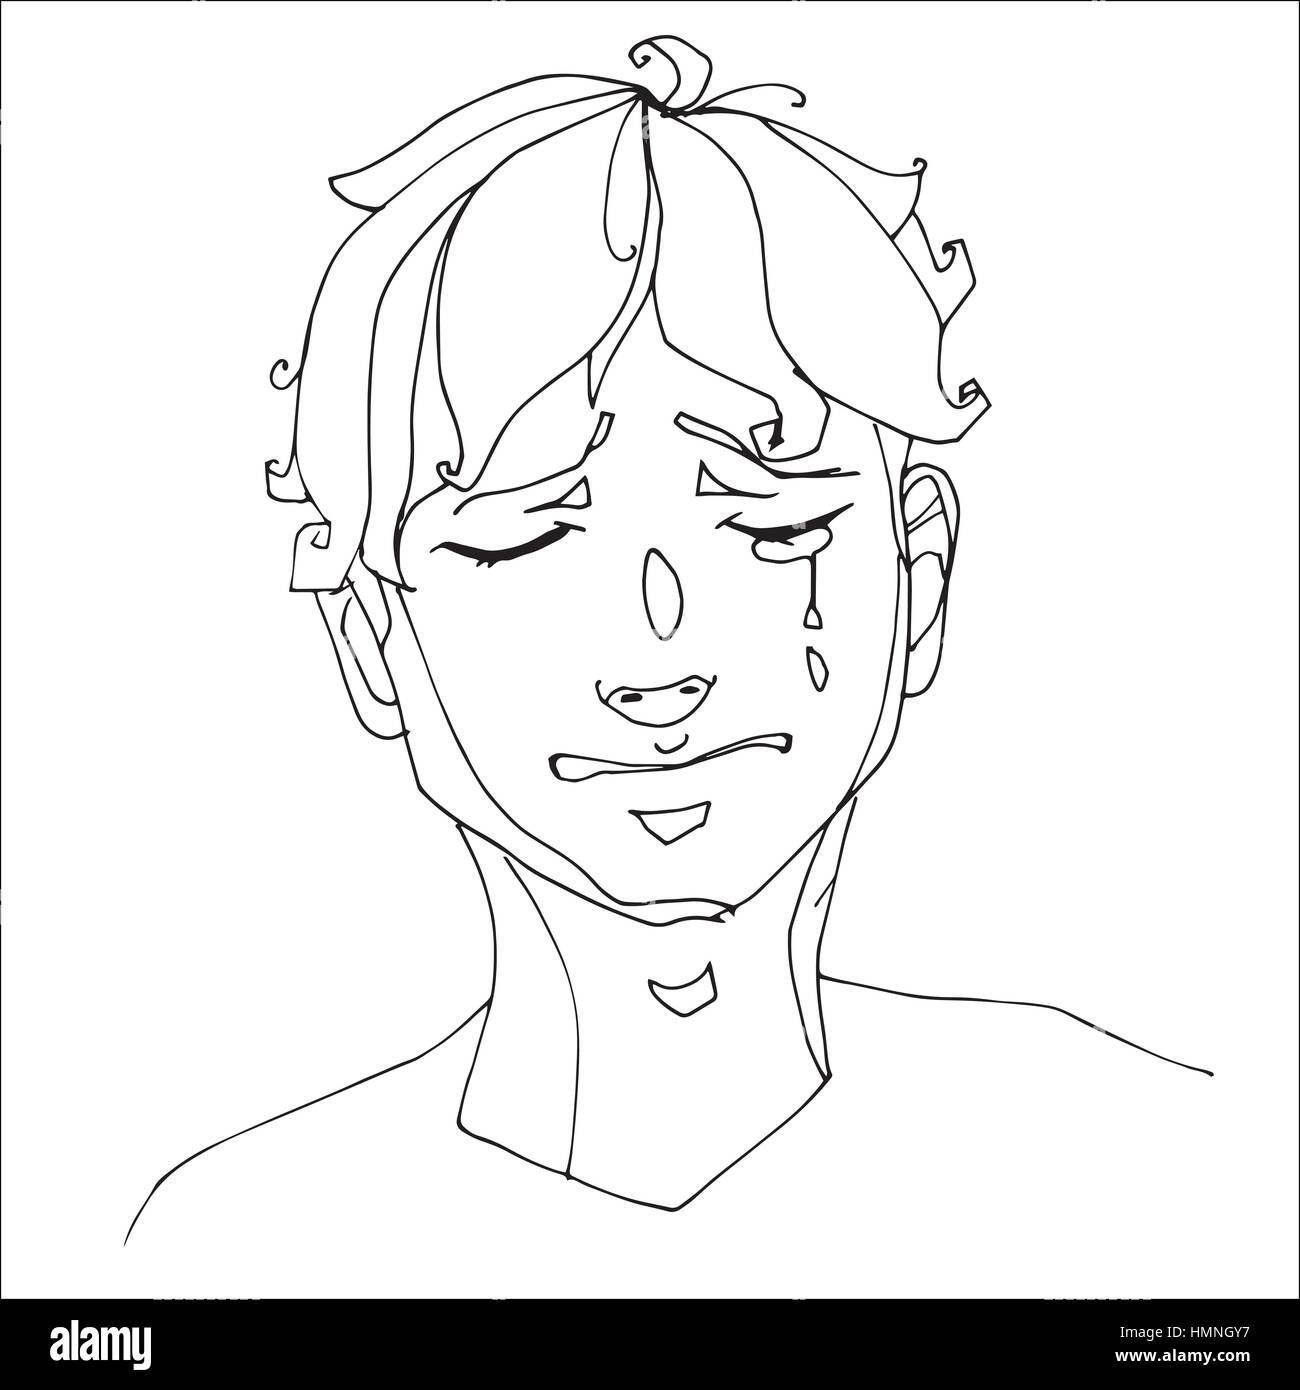 The boy crying heavily human emotions sketch hand drawing contour vector graphics illustration for coloring